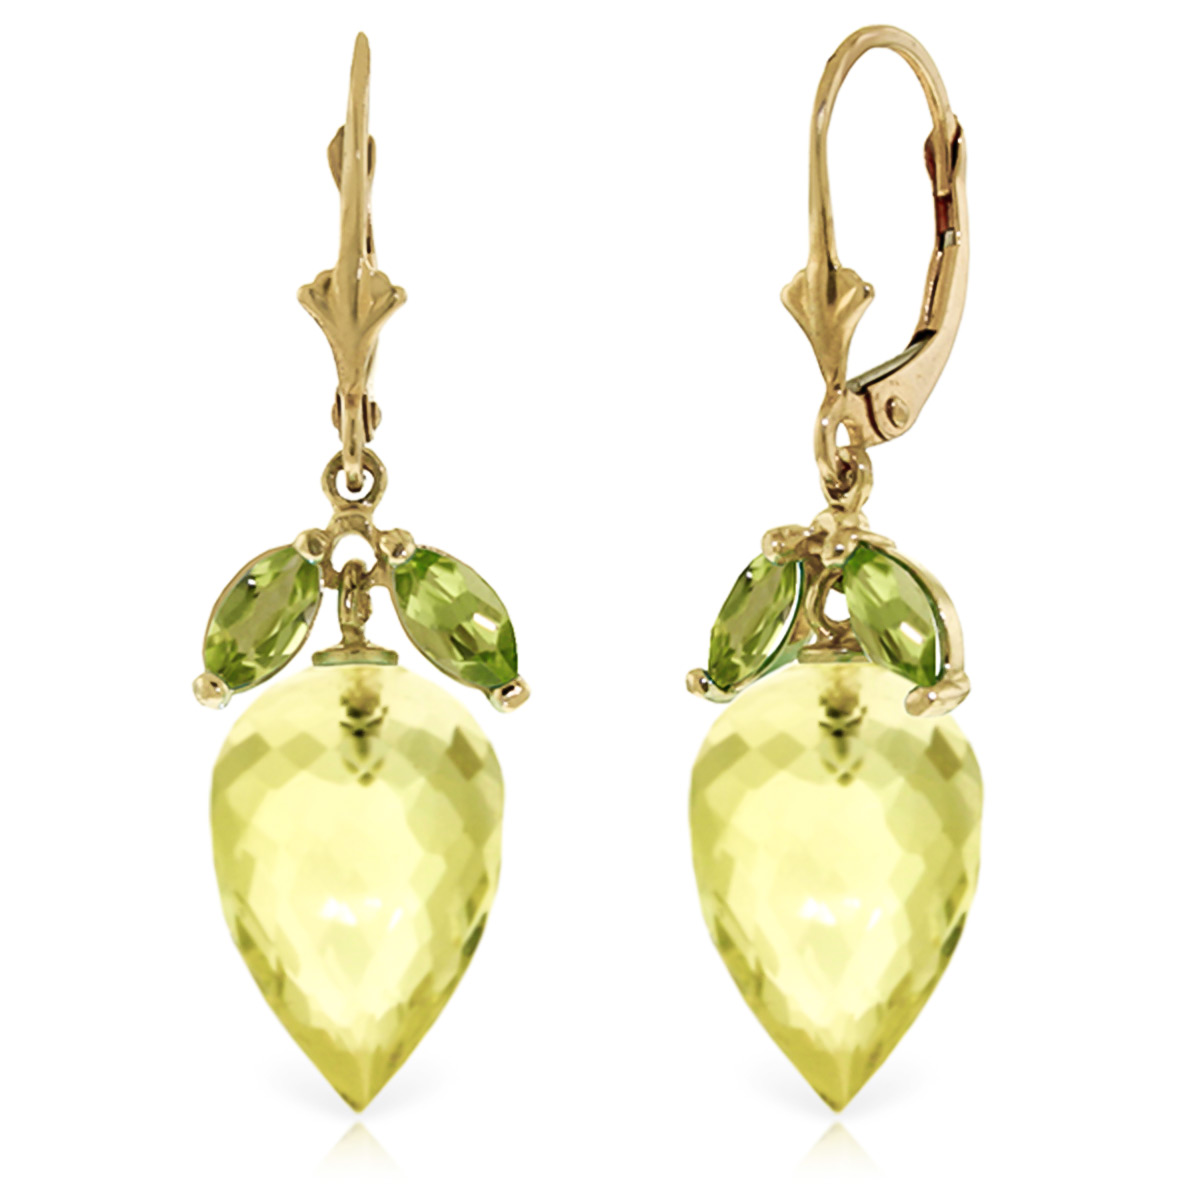 Lemon Quartz and Peridot Drop Earrings 19.0ctw in 9ct Gold